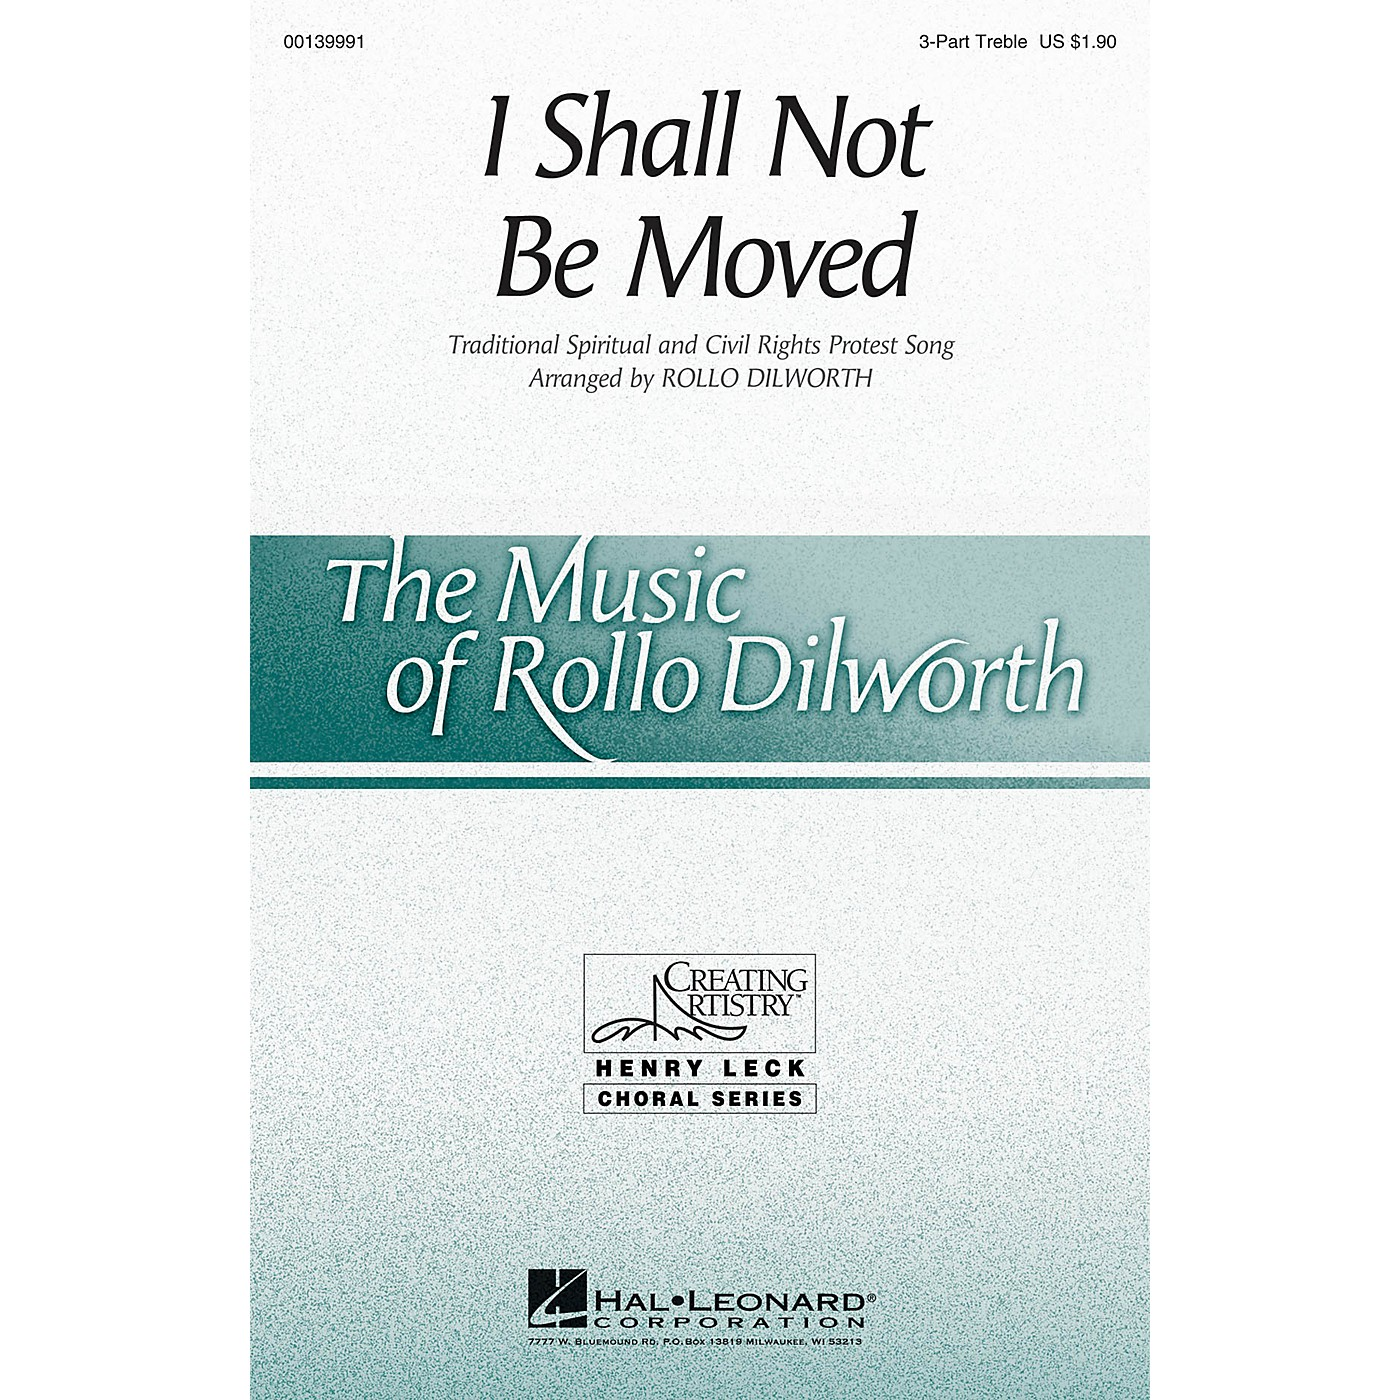 Hal Leonard I Shall Not Be Moved 3 Part Treble arranged by Rollo Dilworth thumbnail